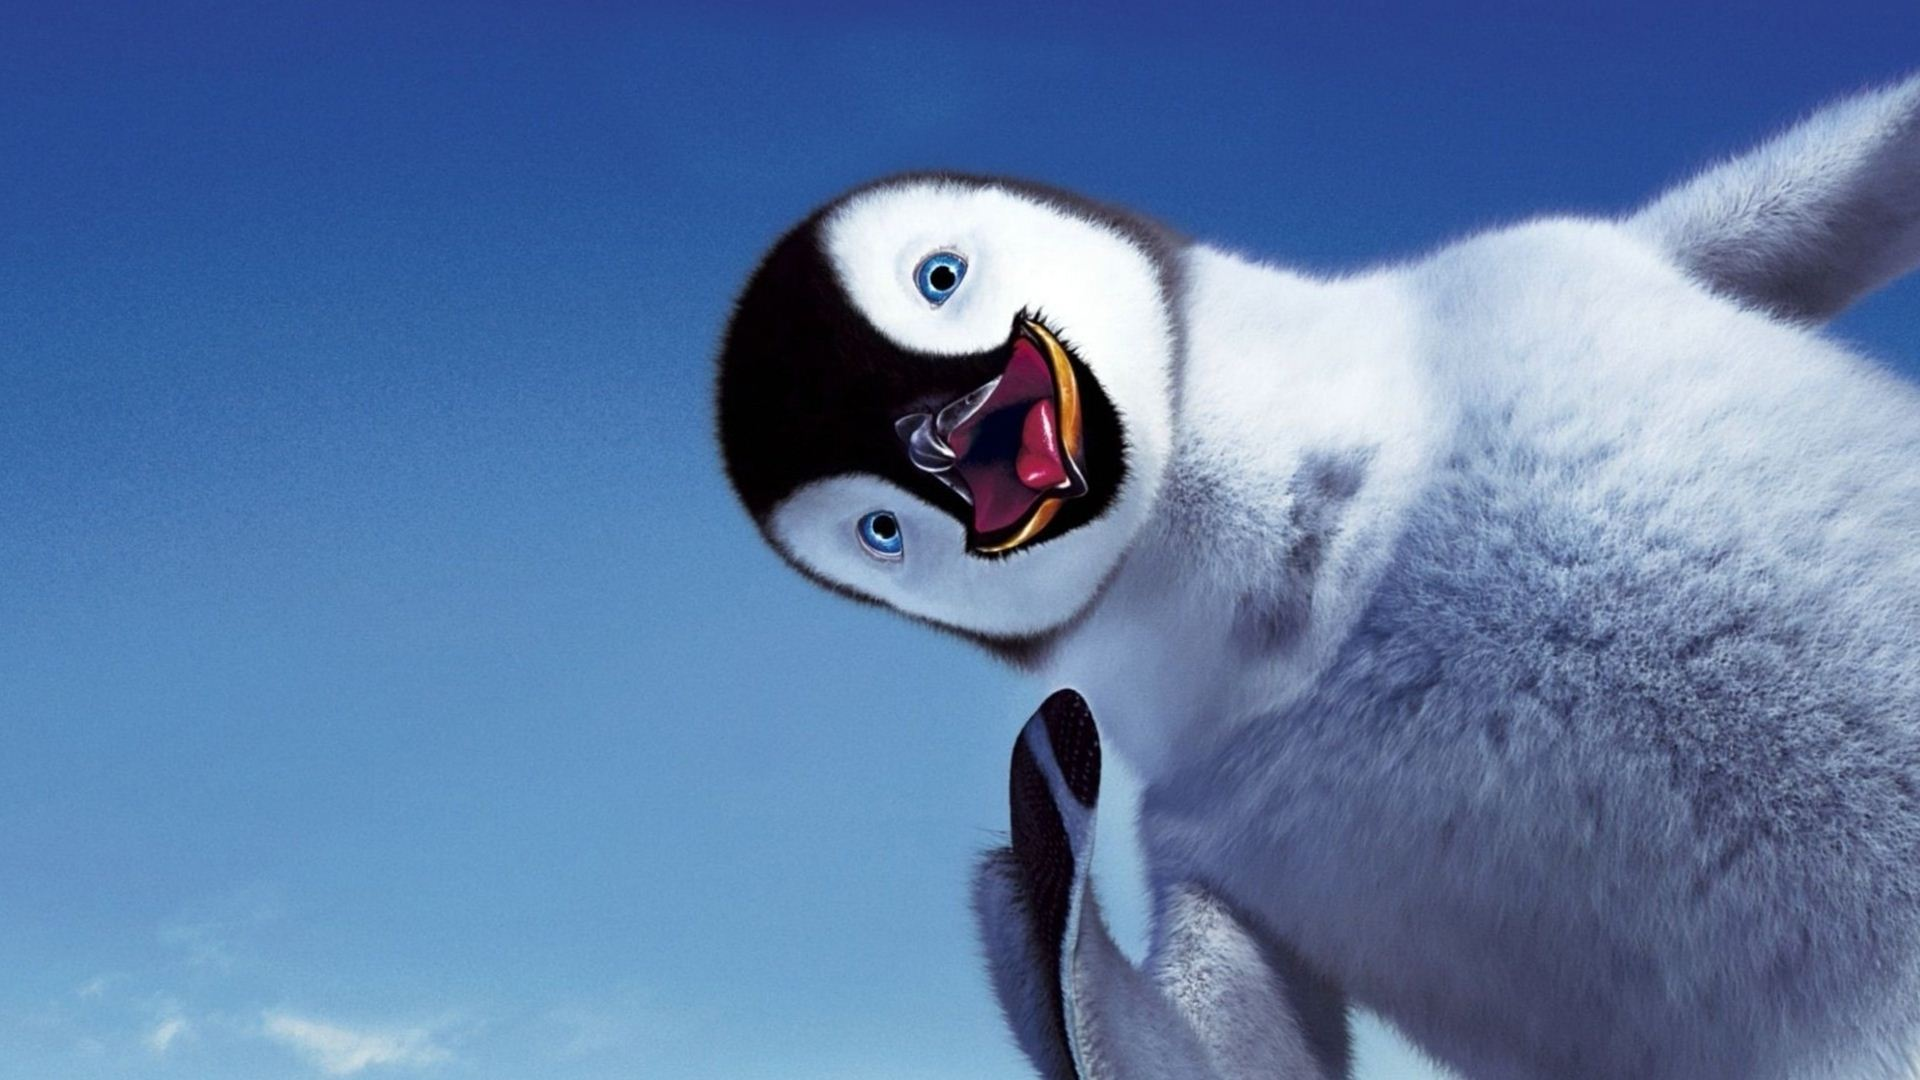 Funny Penguin Wallpaper Download   Cute Penguins Desktop 1920x1080